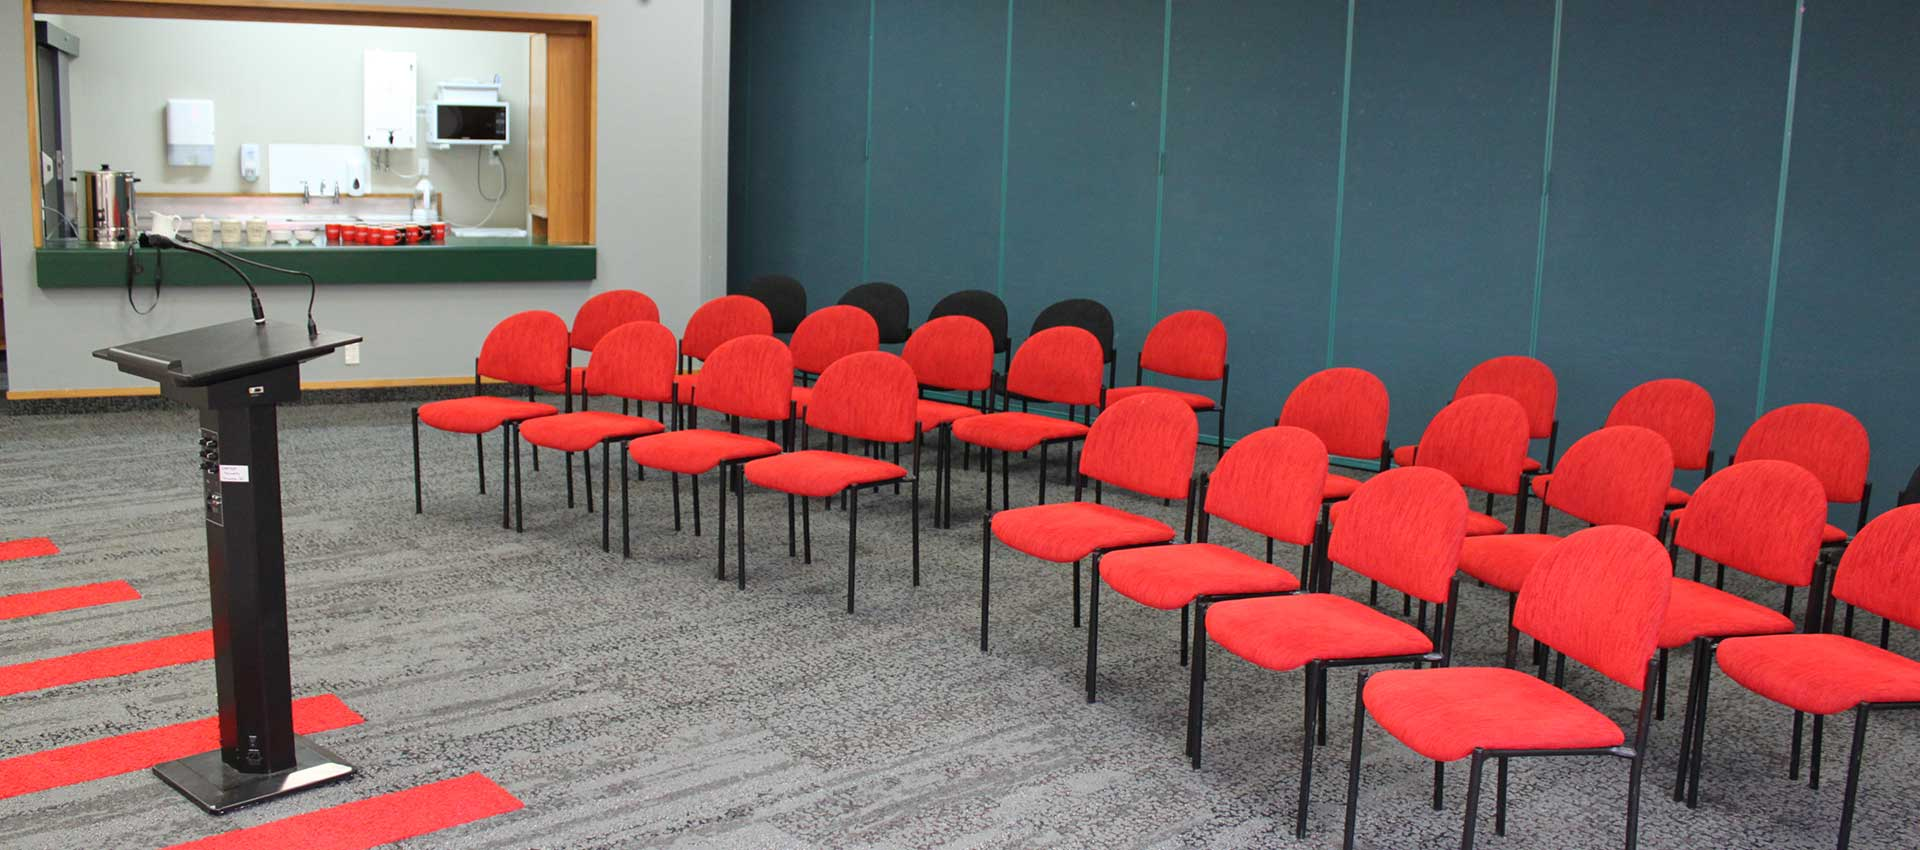 Chairs arranged in conference room